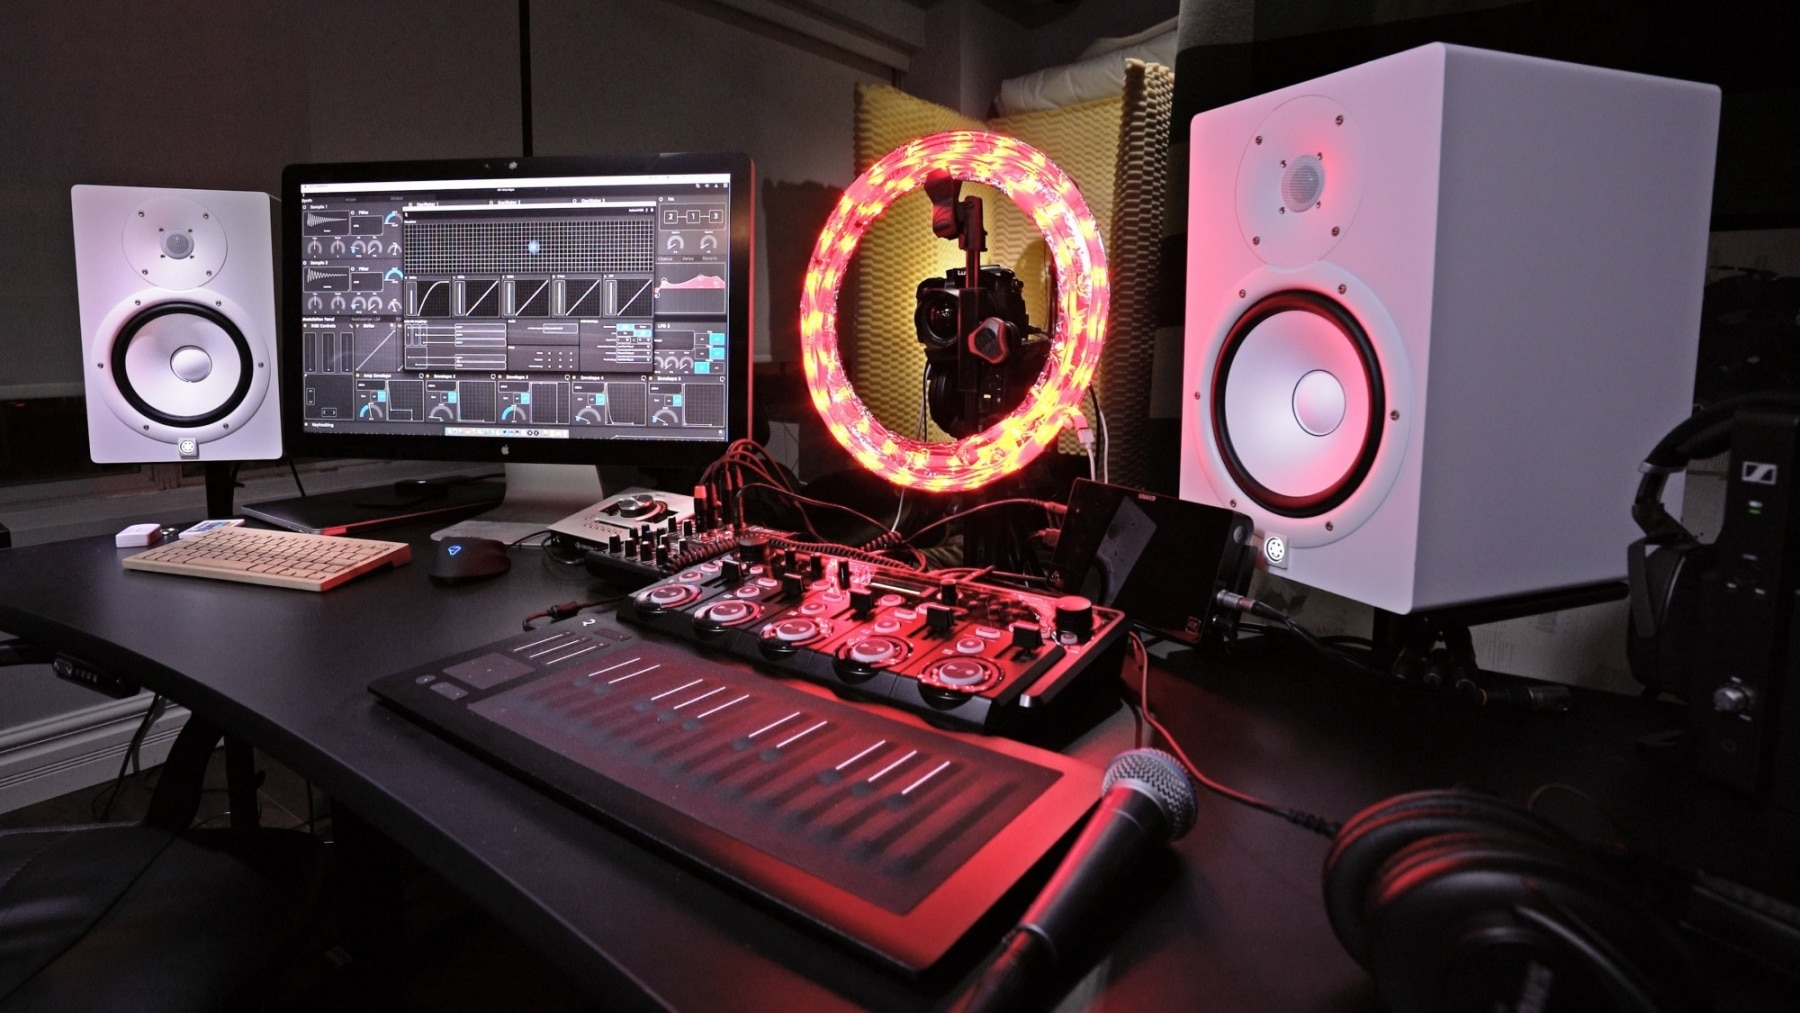 unbox therapy music setup